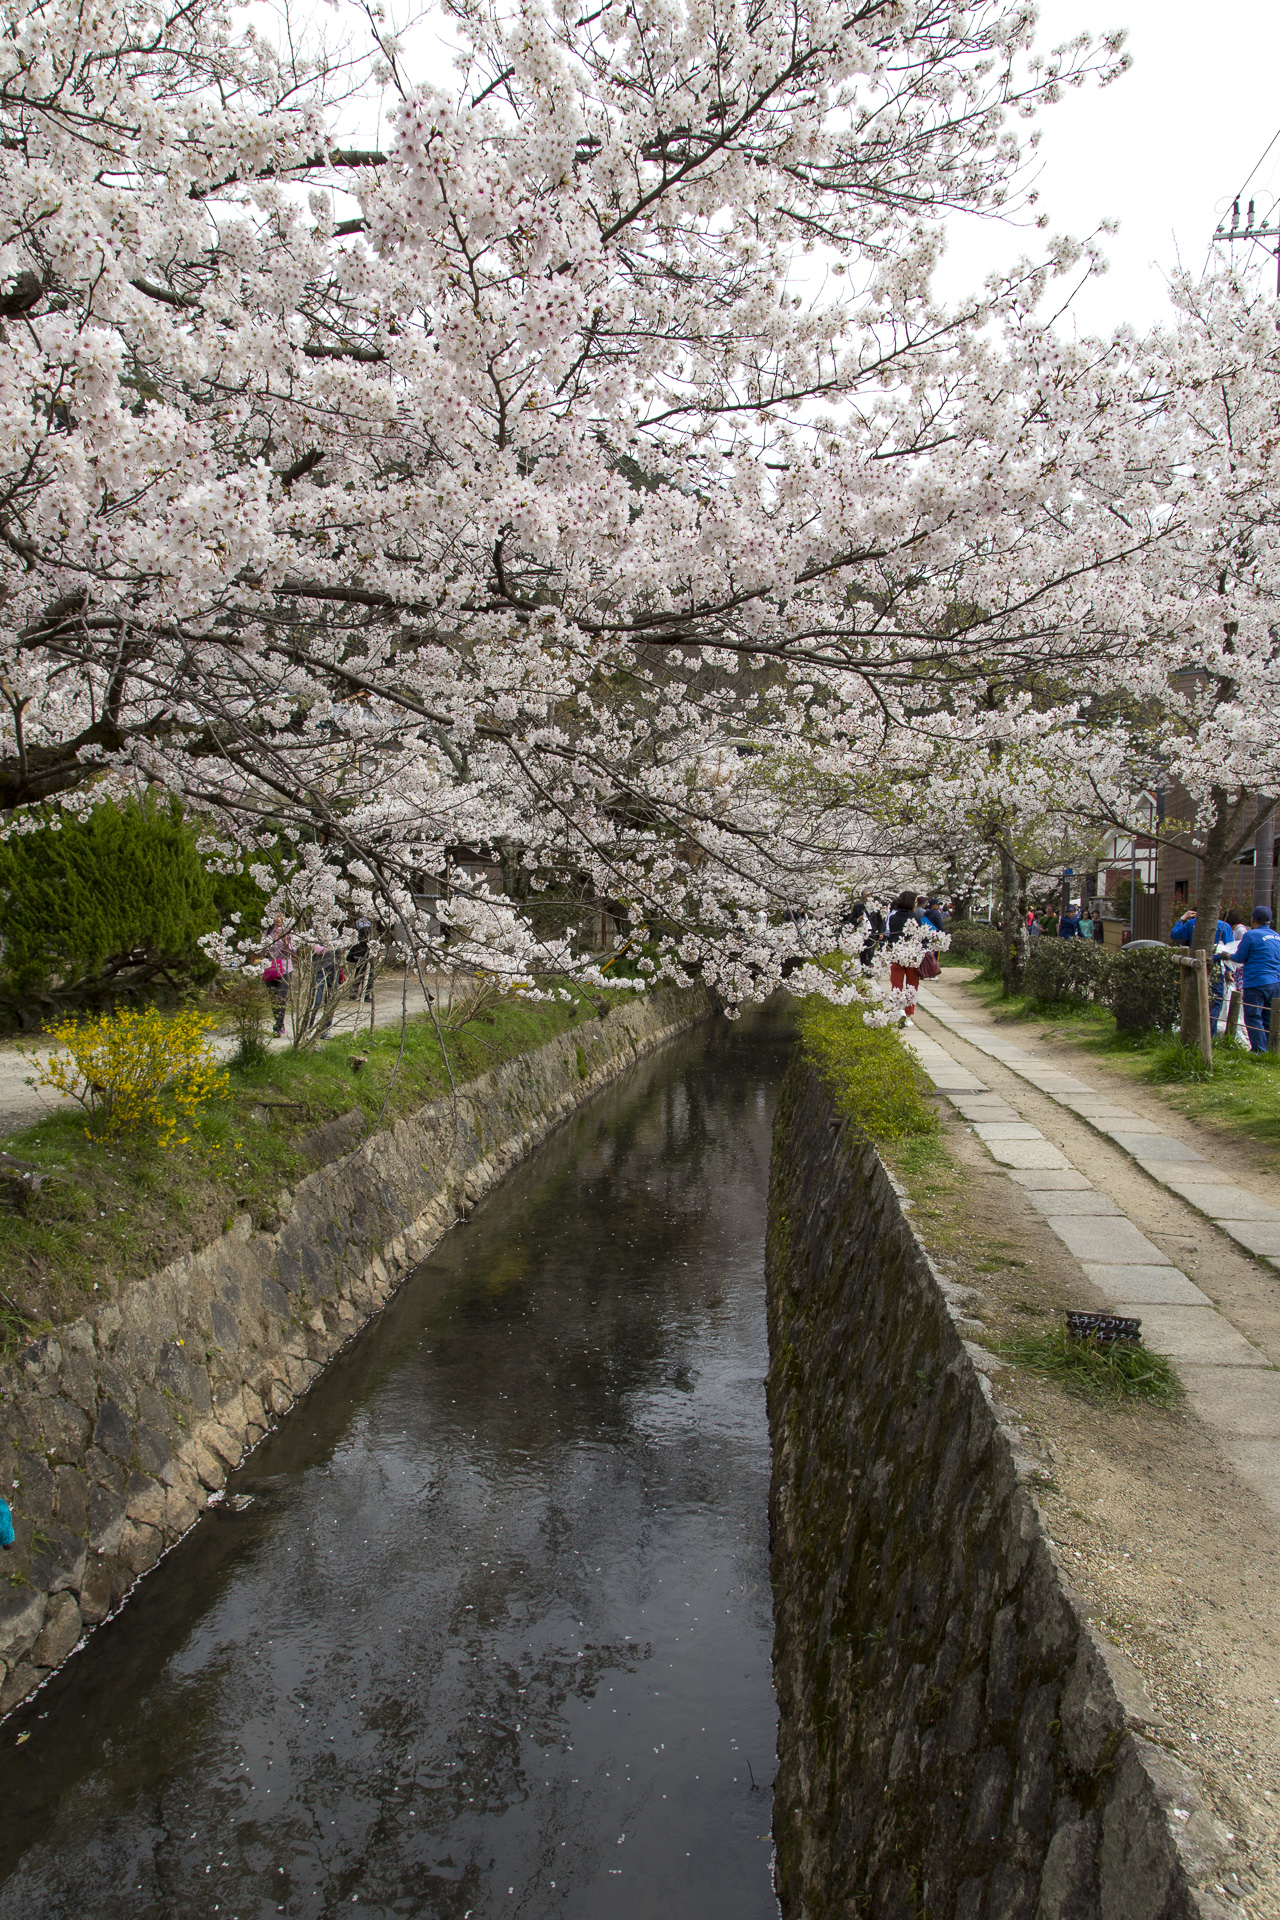 Day 11: Kyoto and Sakura (cherry blossoms)